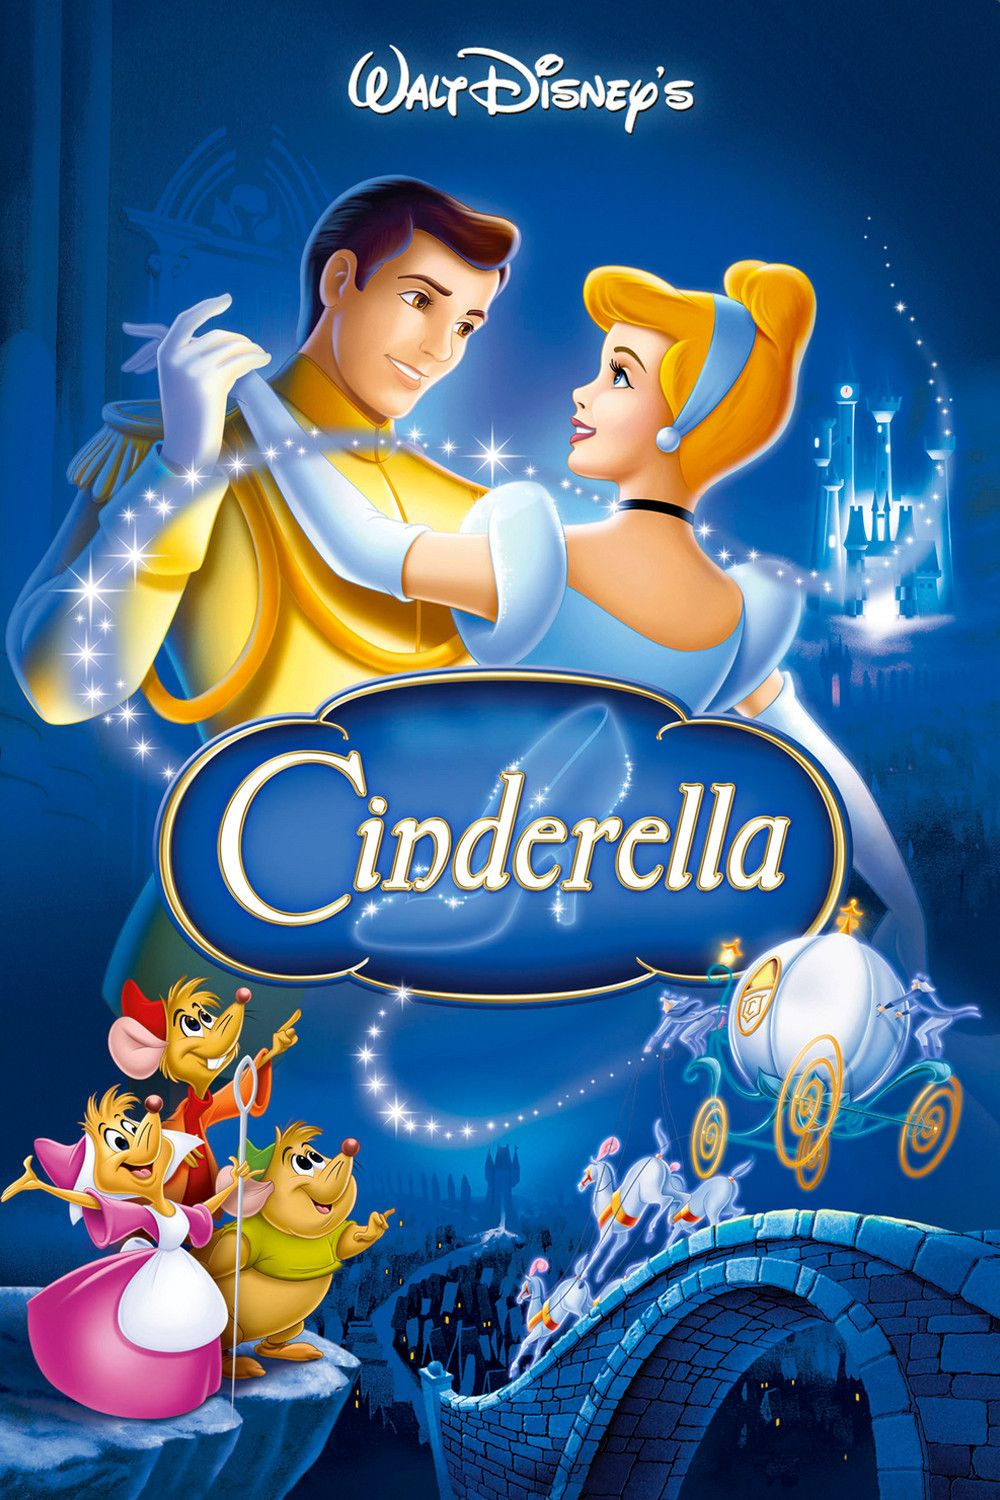 life lessons from disney: Cinderella